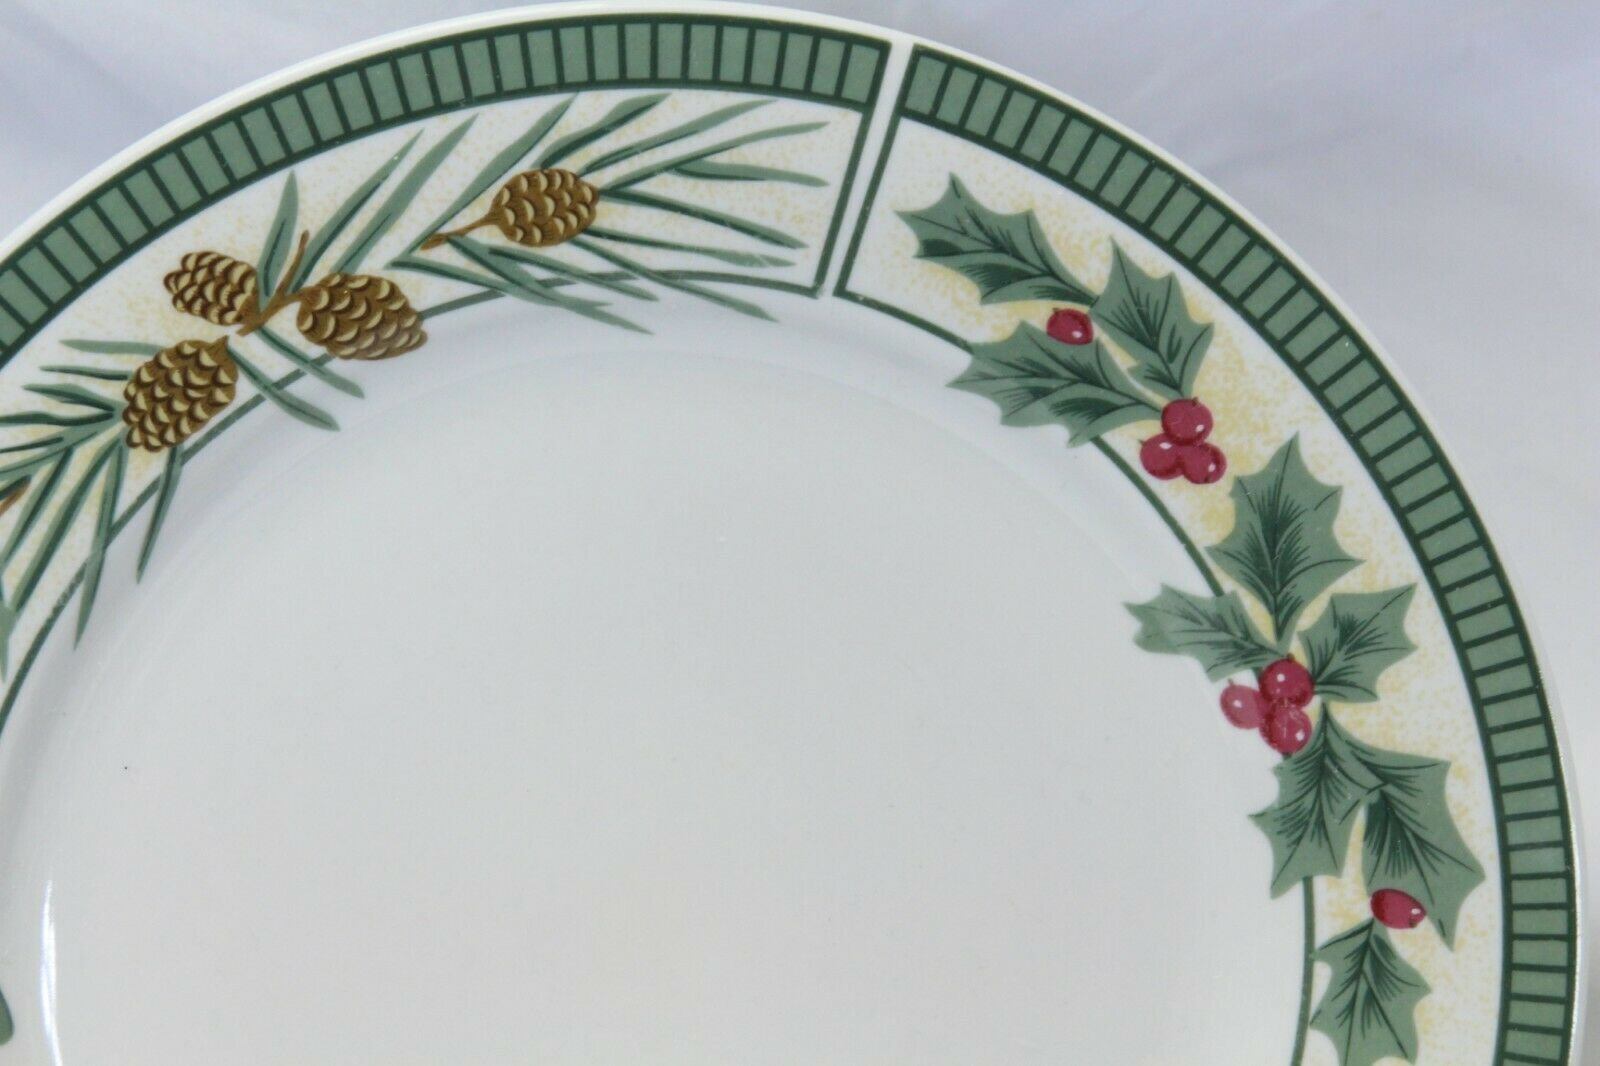 Fairfield Wintergreen Plates and Bowls Lot of 15  Christmas image 4